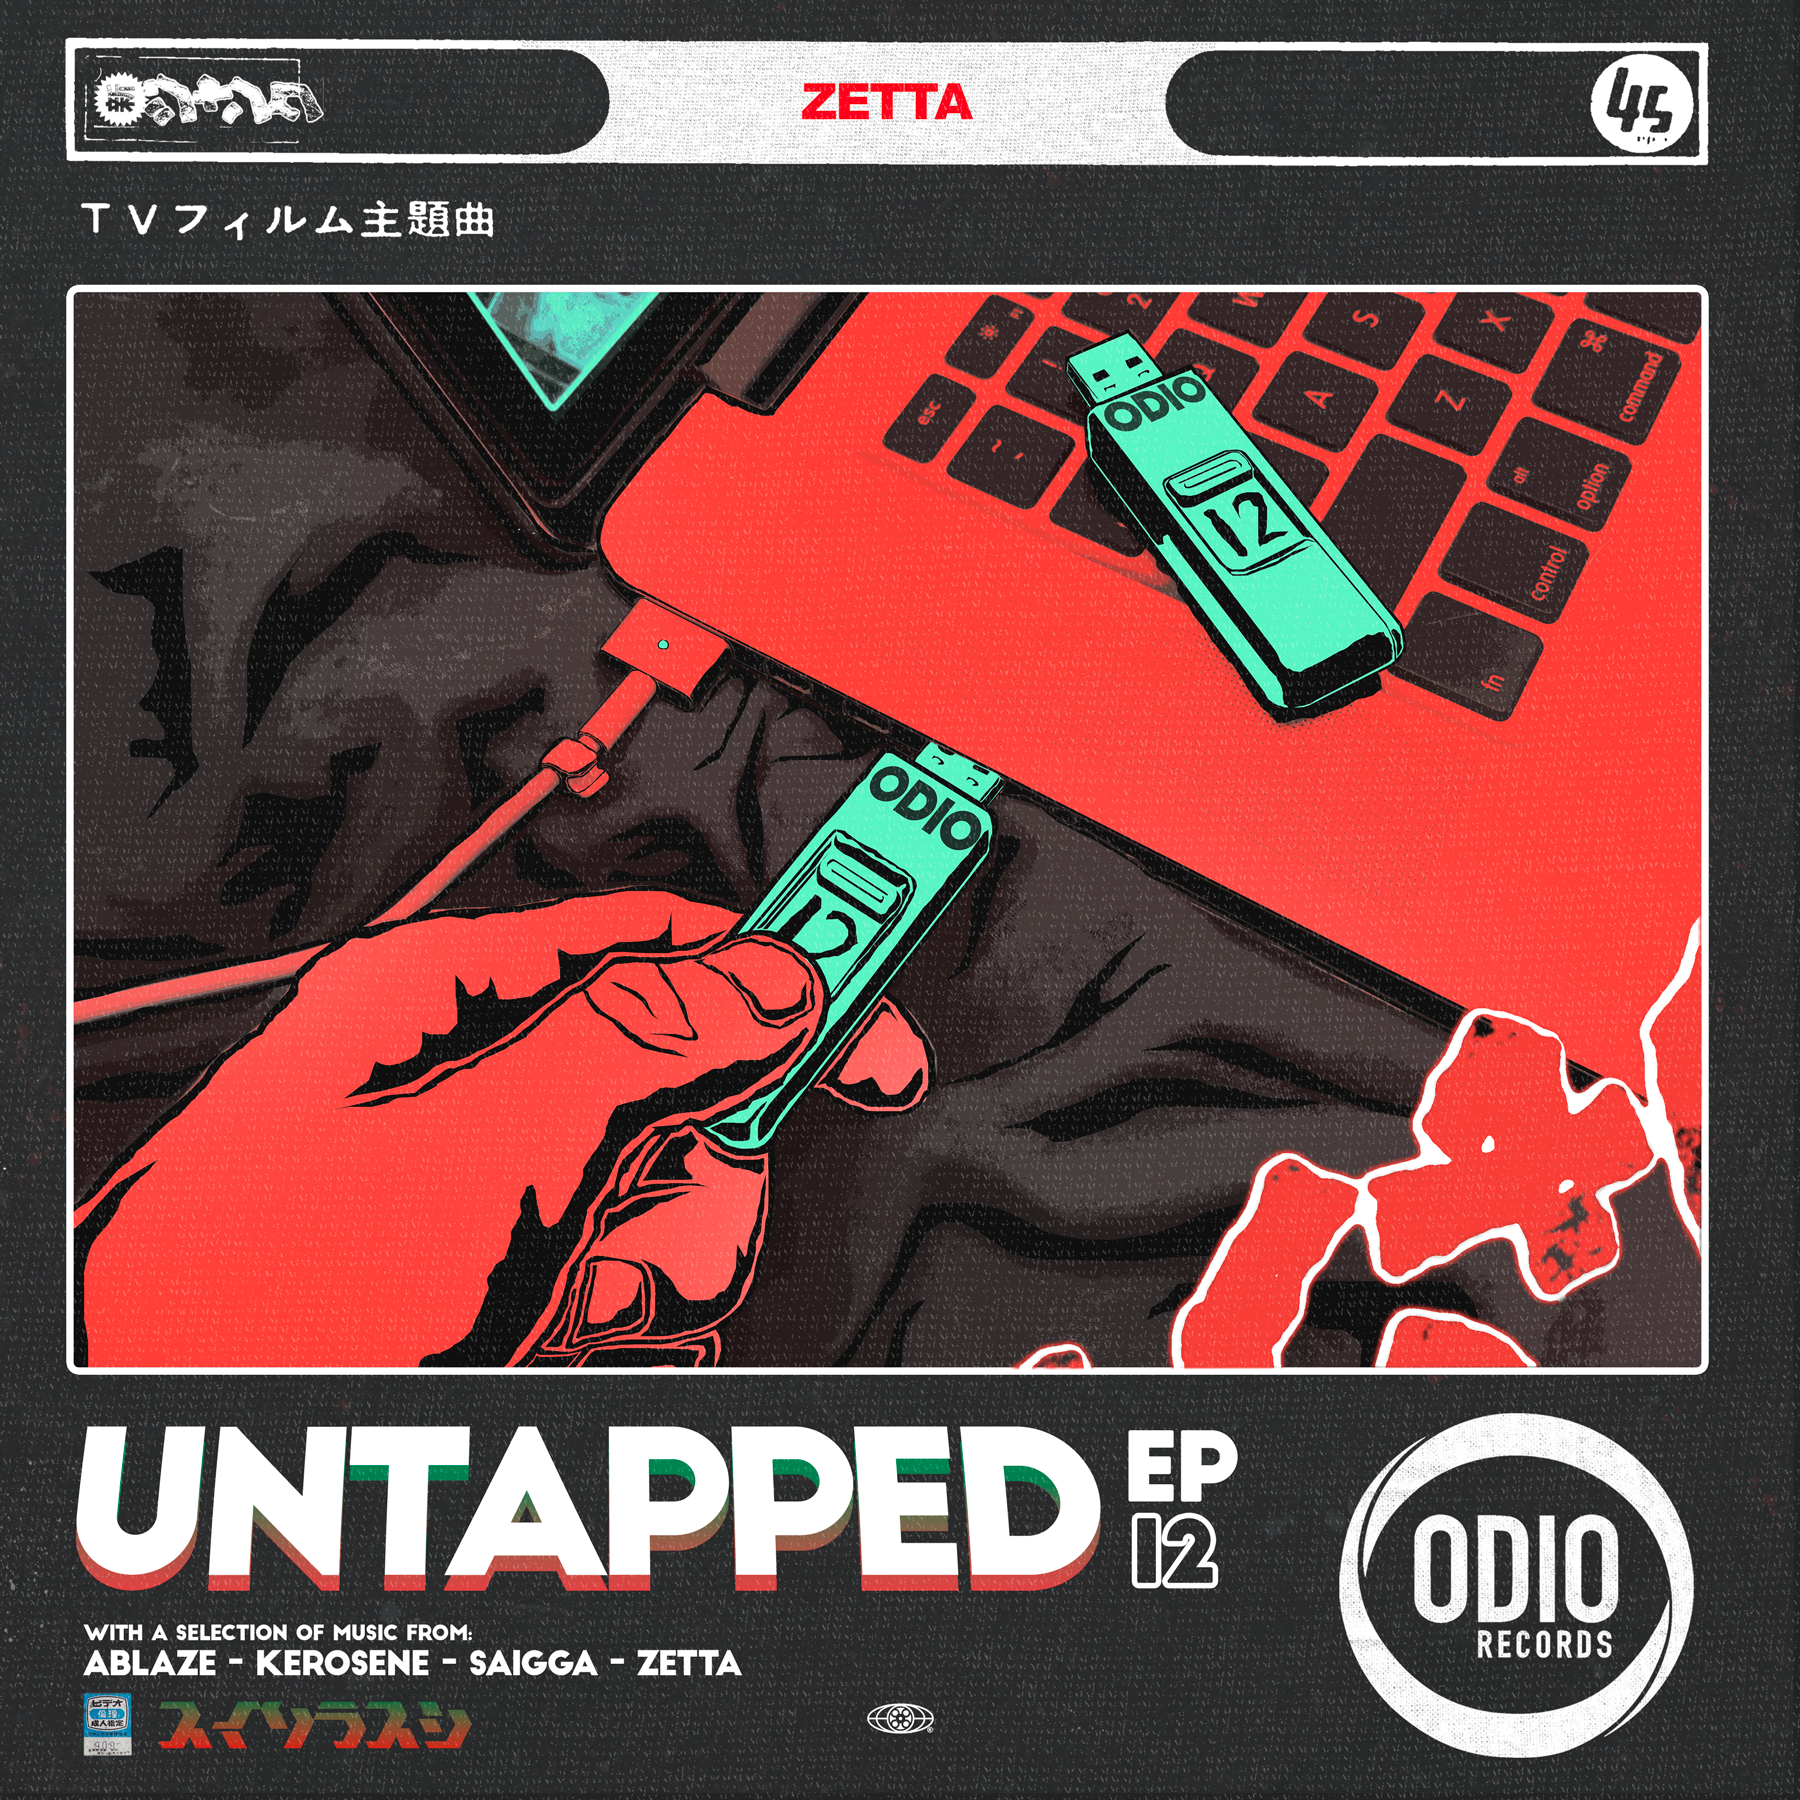 Untapped Vol. 12: Presented by Zetta Image